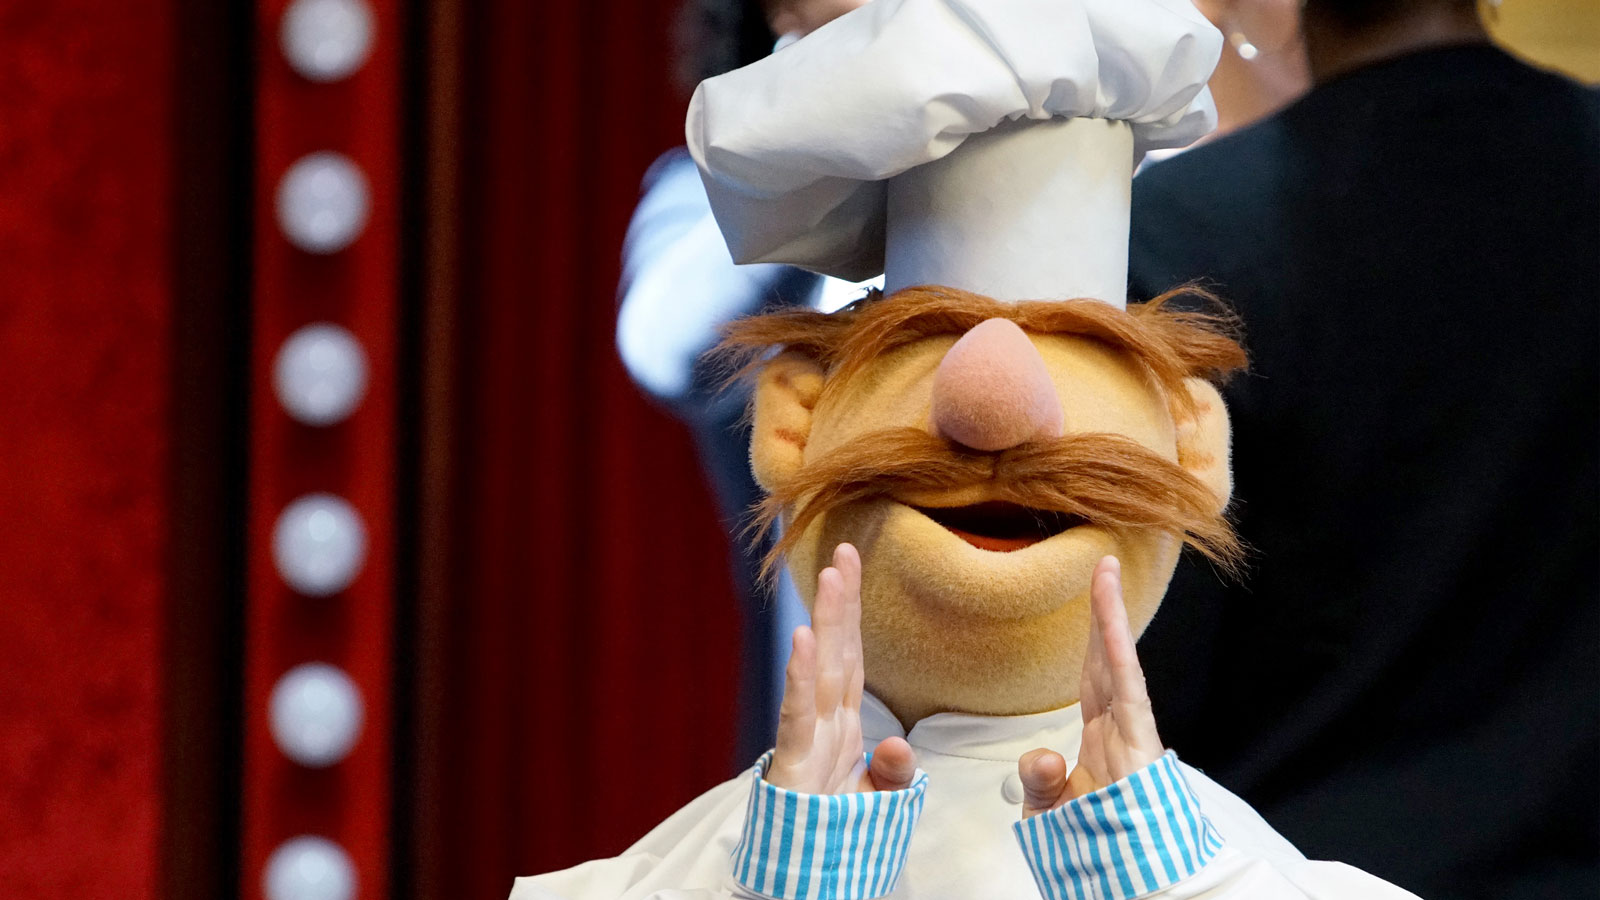 7 kitchen and life lessons that the swedish chef taught us